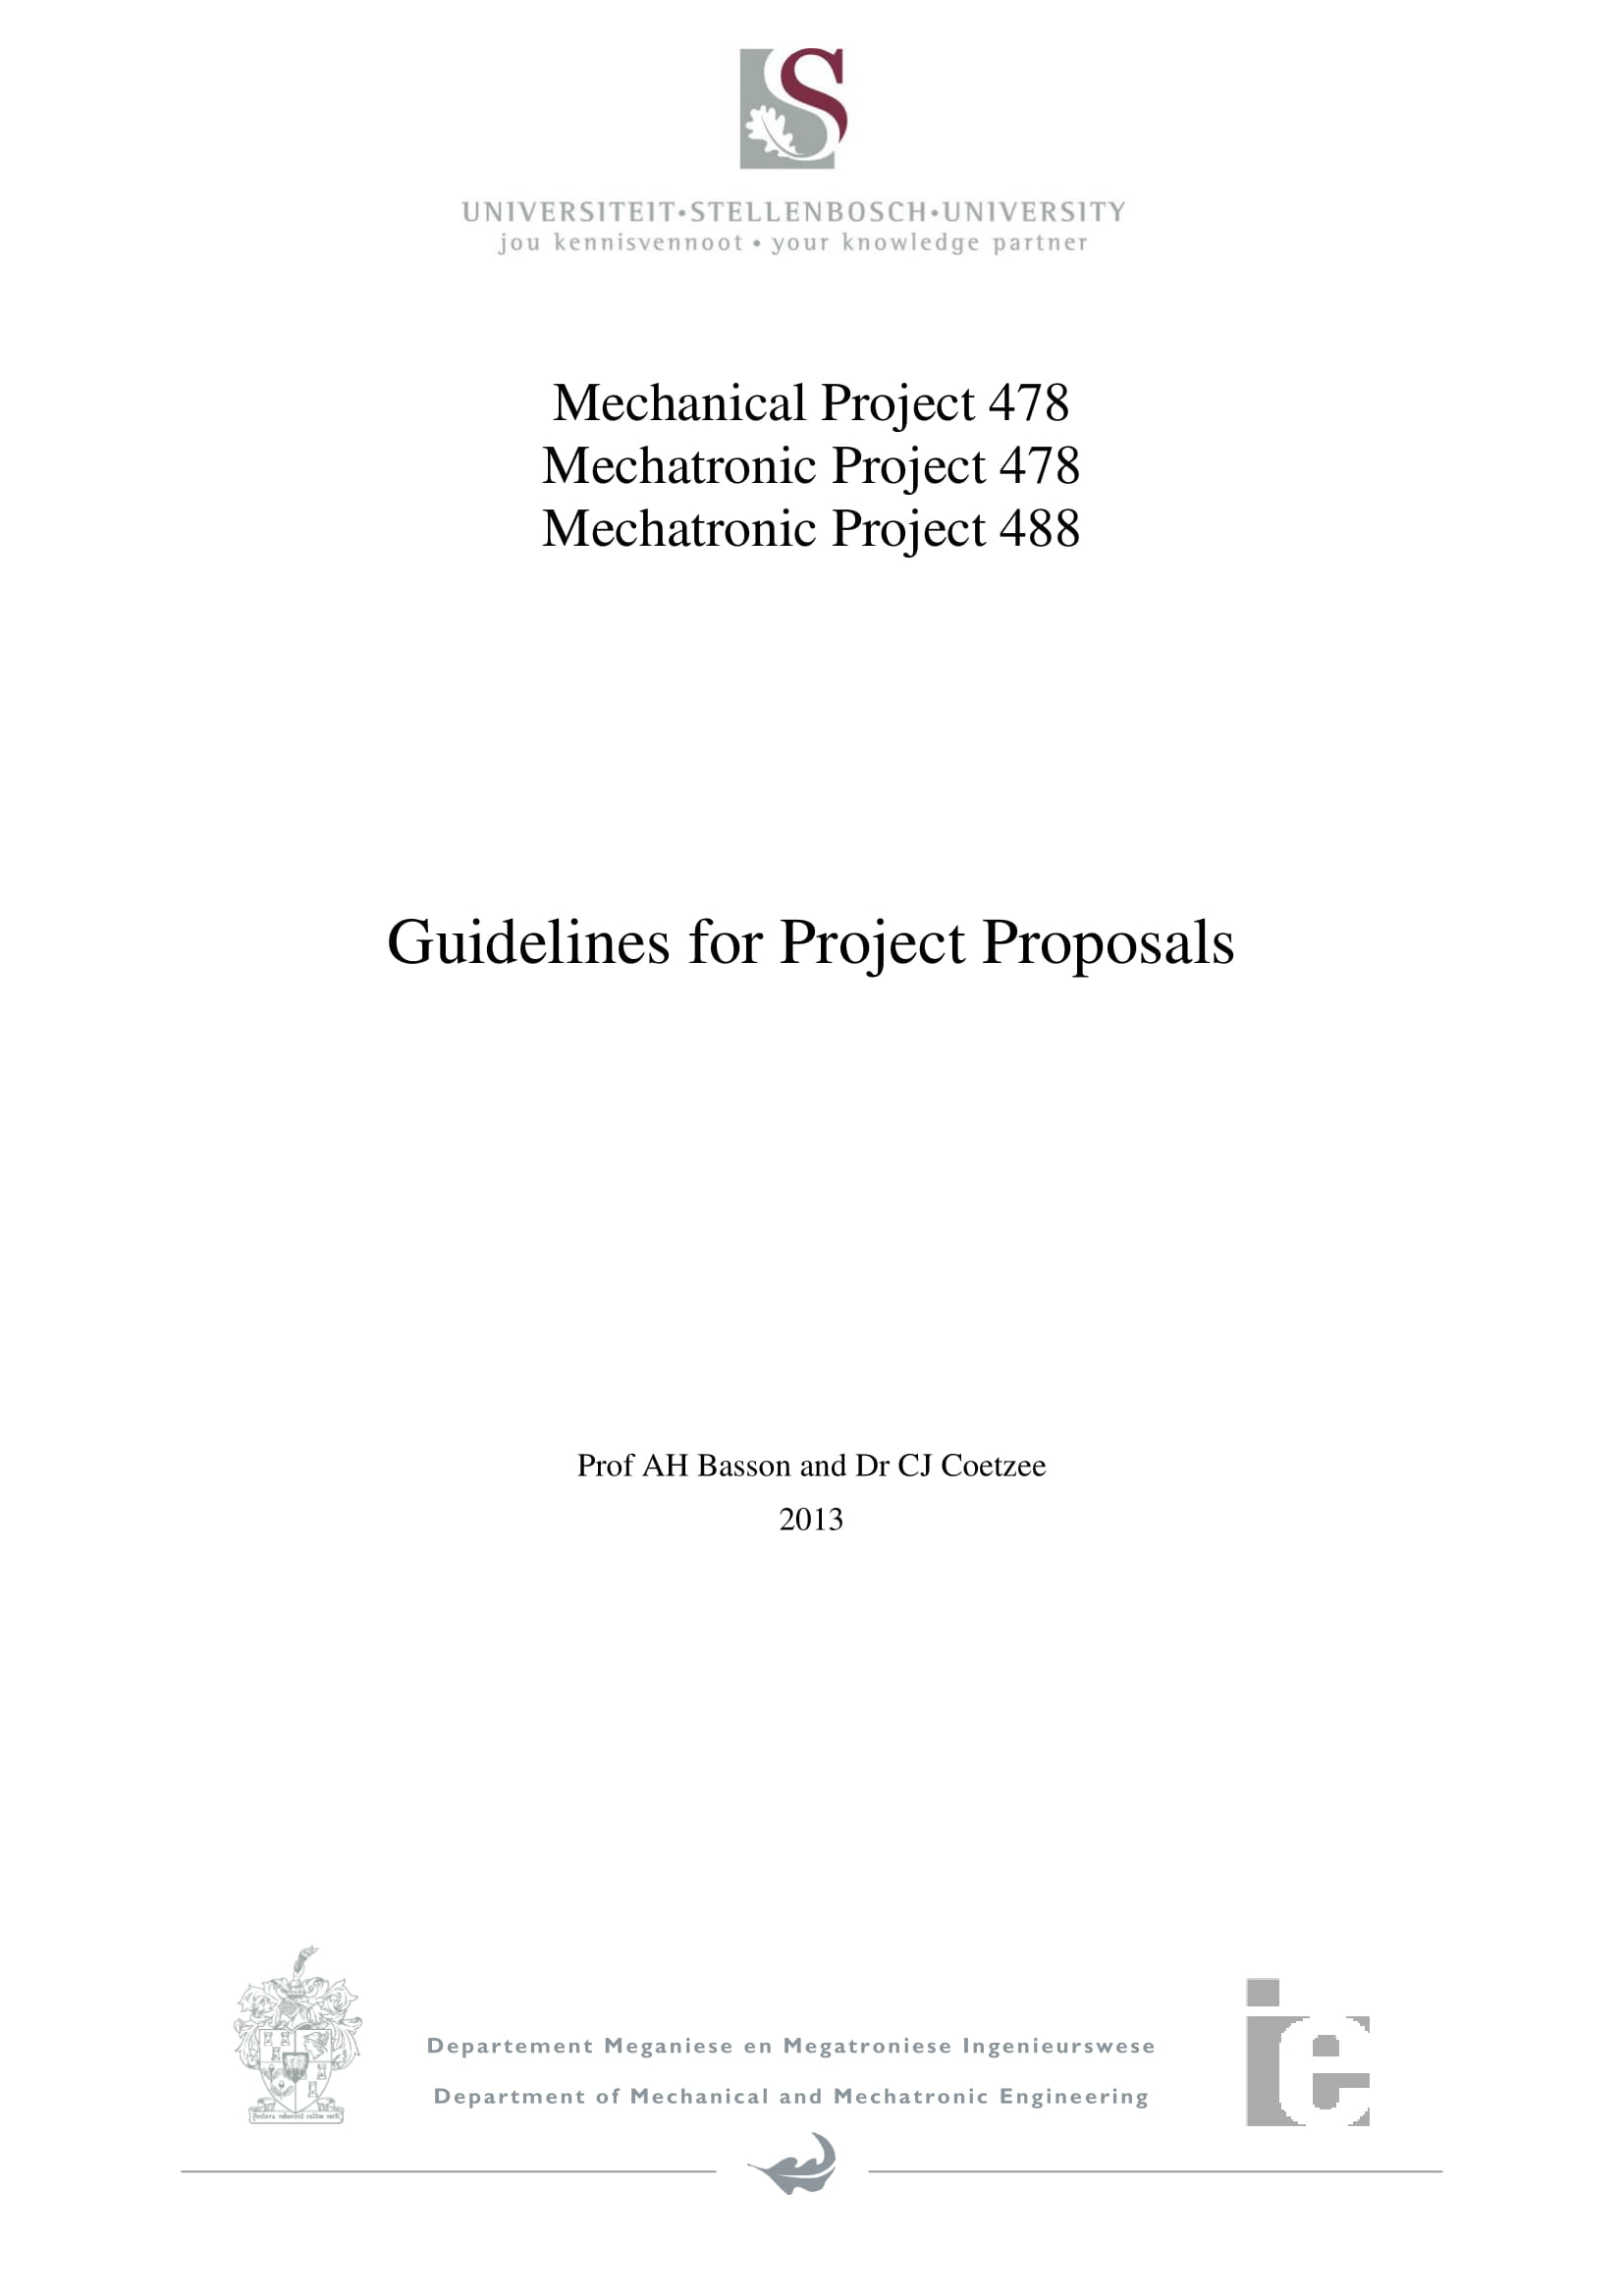 project proposal guidelines for students example 01